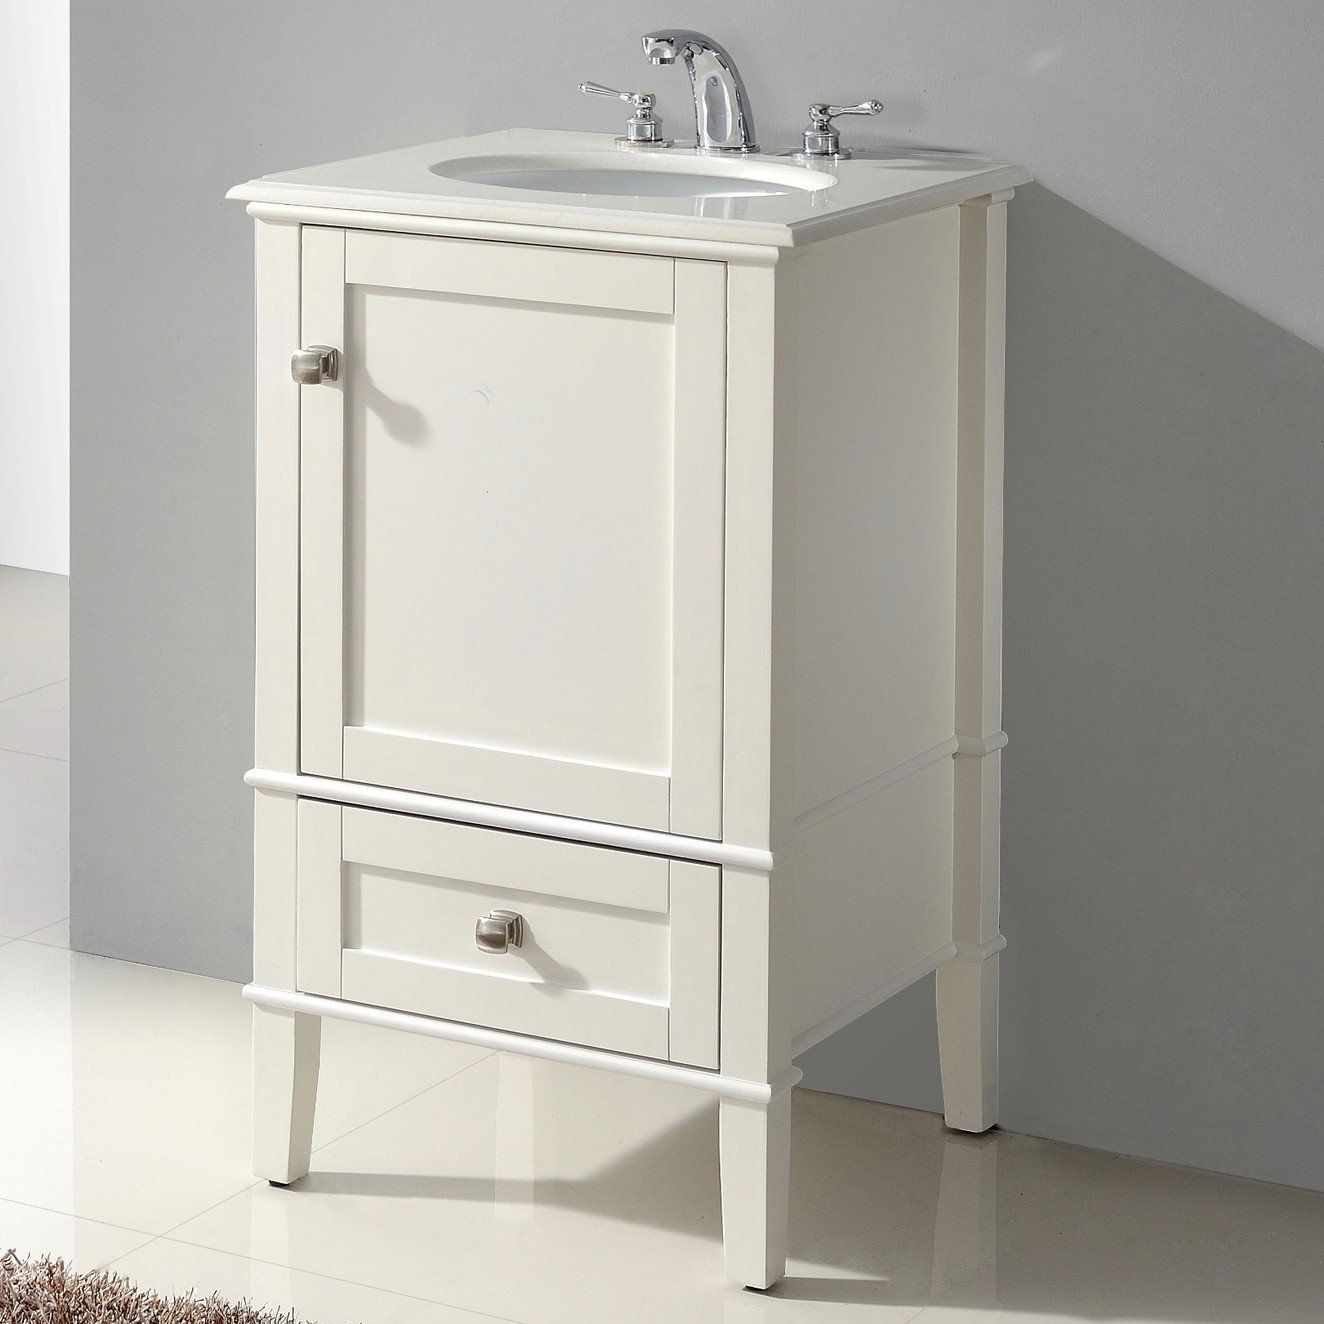 Merveilleux 21 Inch Single Bathroom Vanity Set With Off White Marble Top